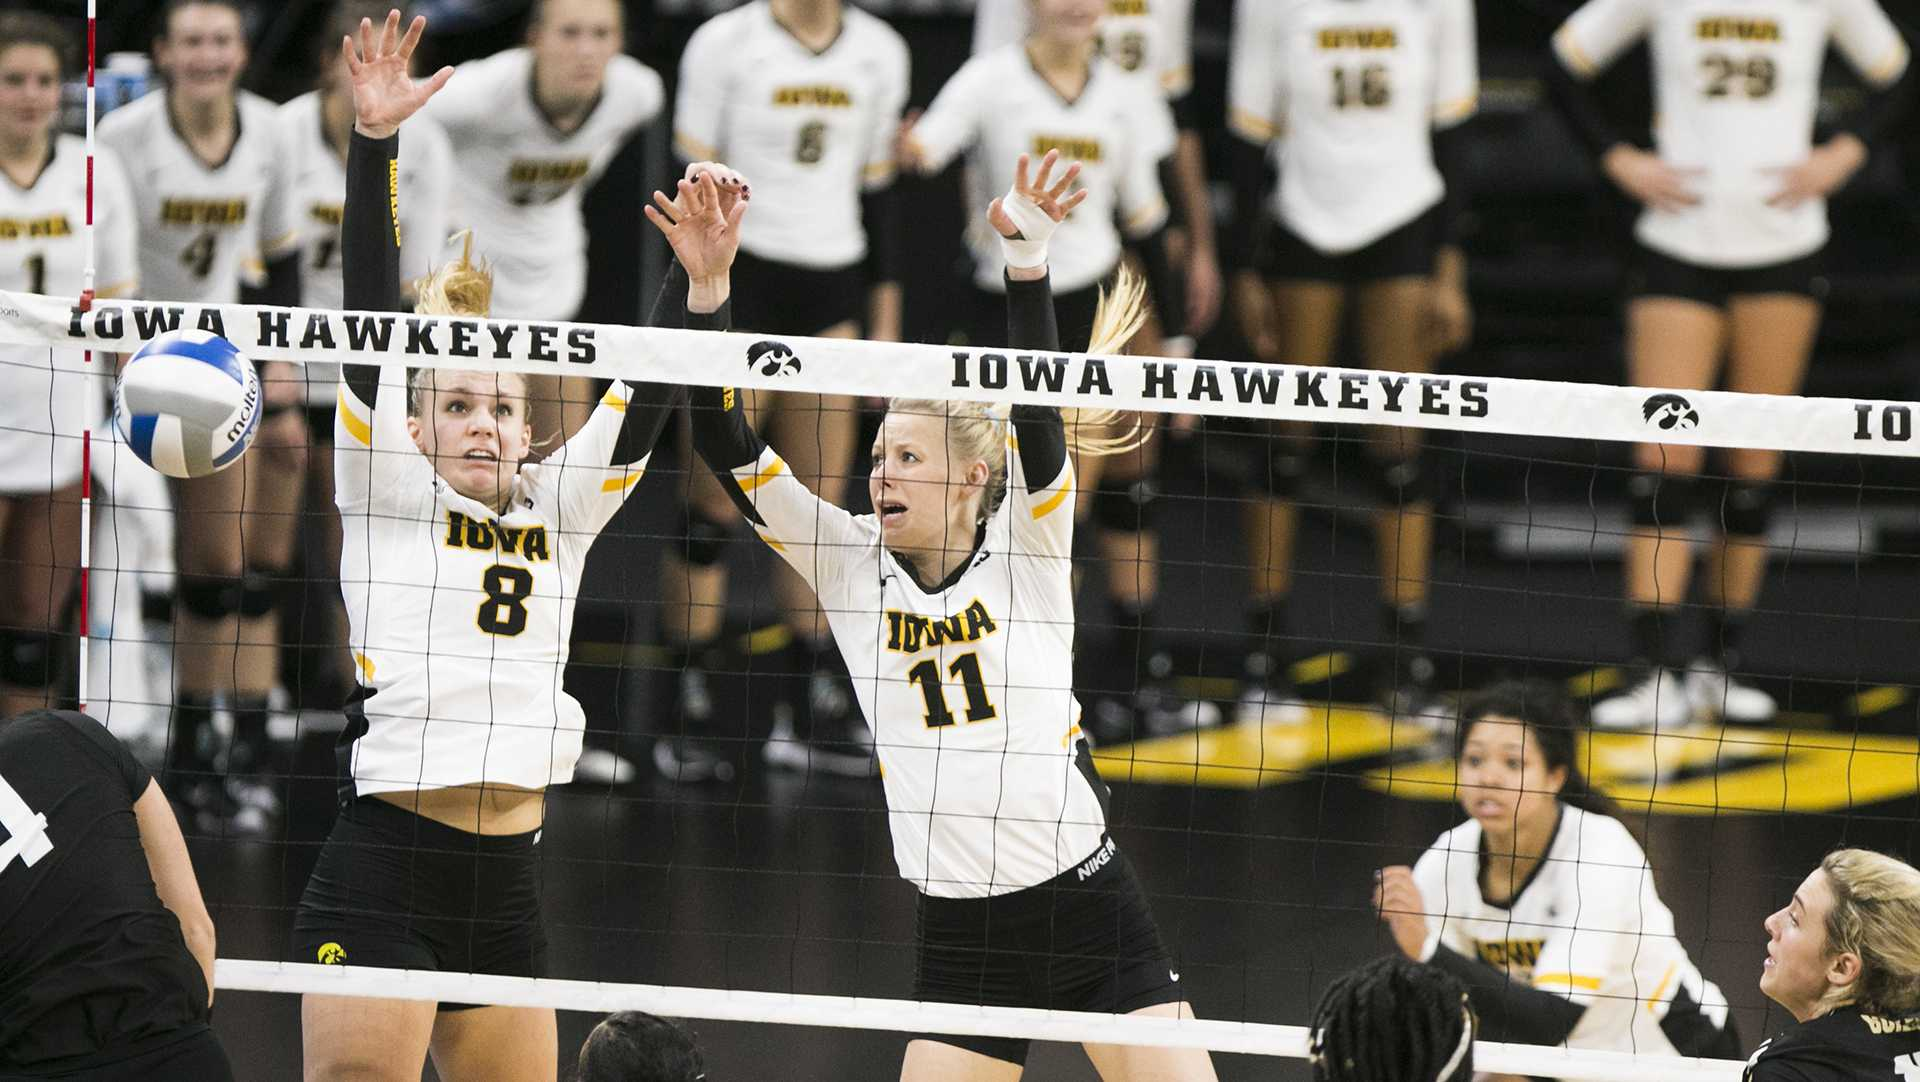 Iowa's Reghan Coyle and middle blocker Kelsey O'Neill block a spike during an Iowa/Purdue volleyball game in Carver-Hawkeye Arena on Sunday, Nov. 5, 2017. The Boilermakers defeated the Hawkeyes, 3-2. (Joseph Cress/The Daily Iowan)